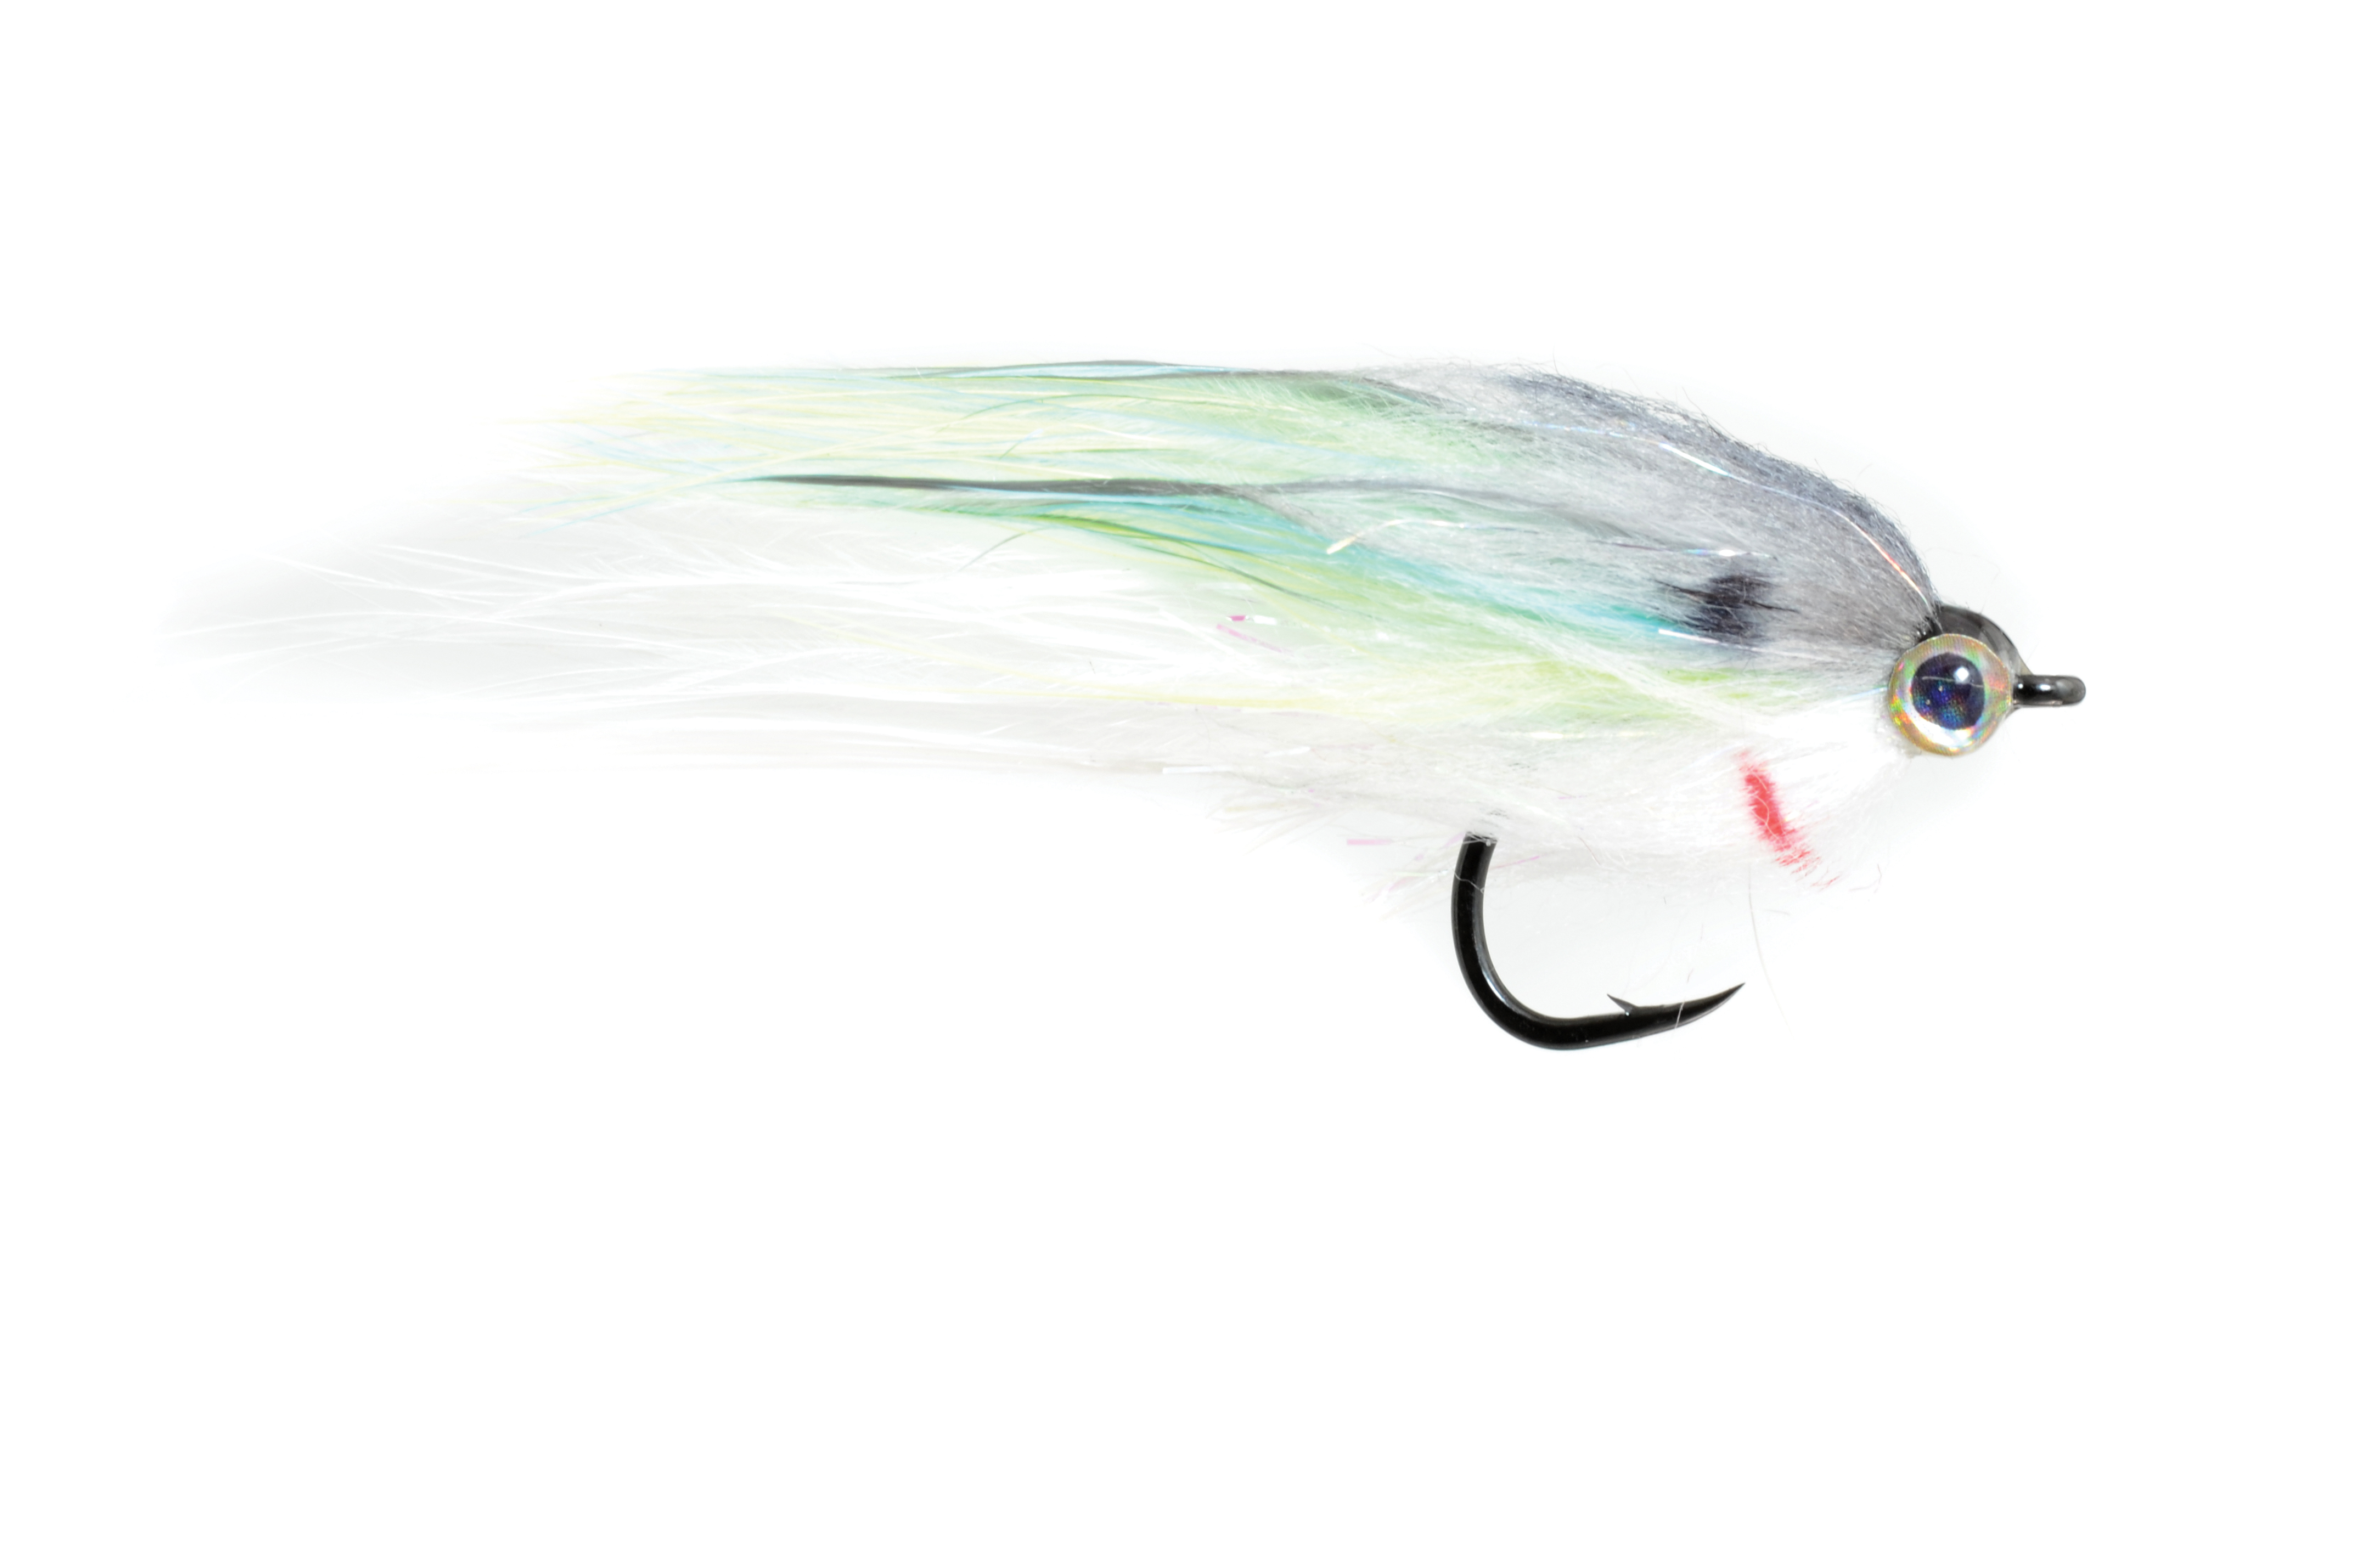 Low Fat Minnow Sexy Shad